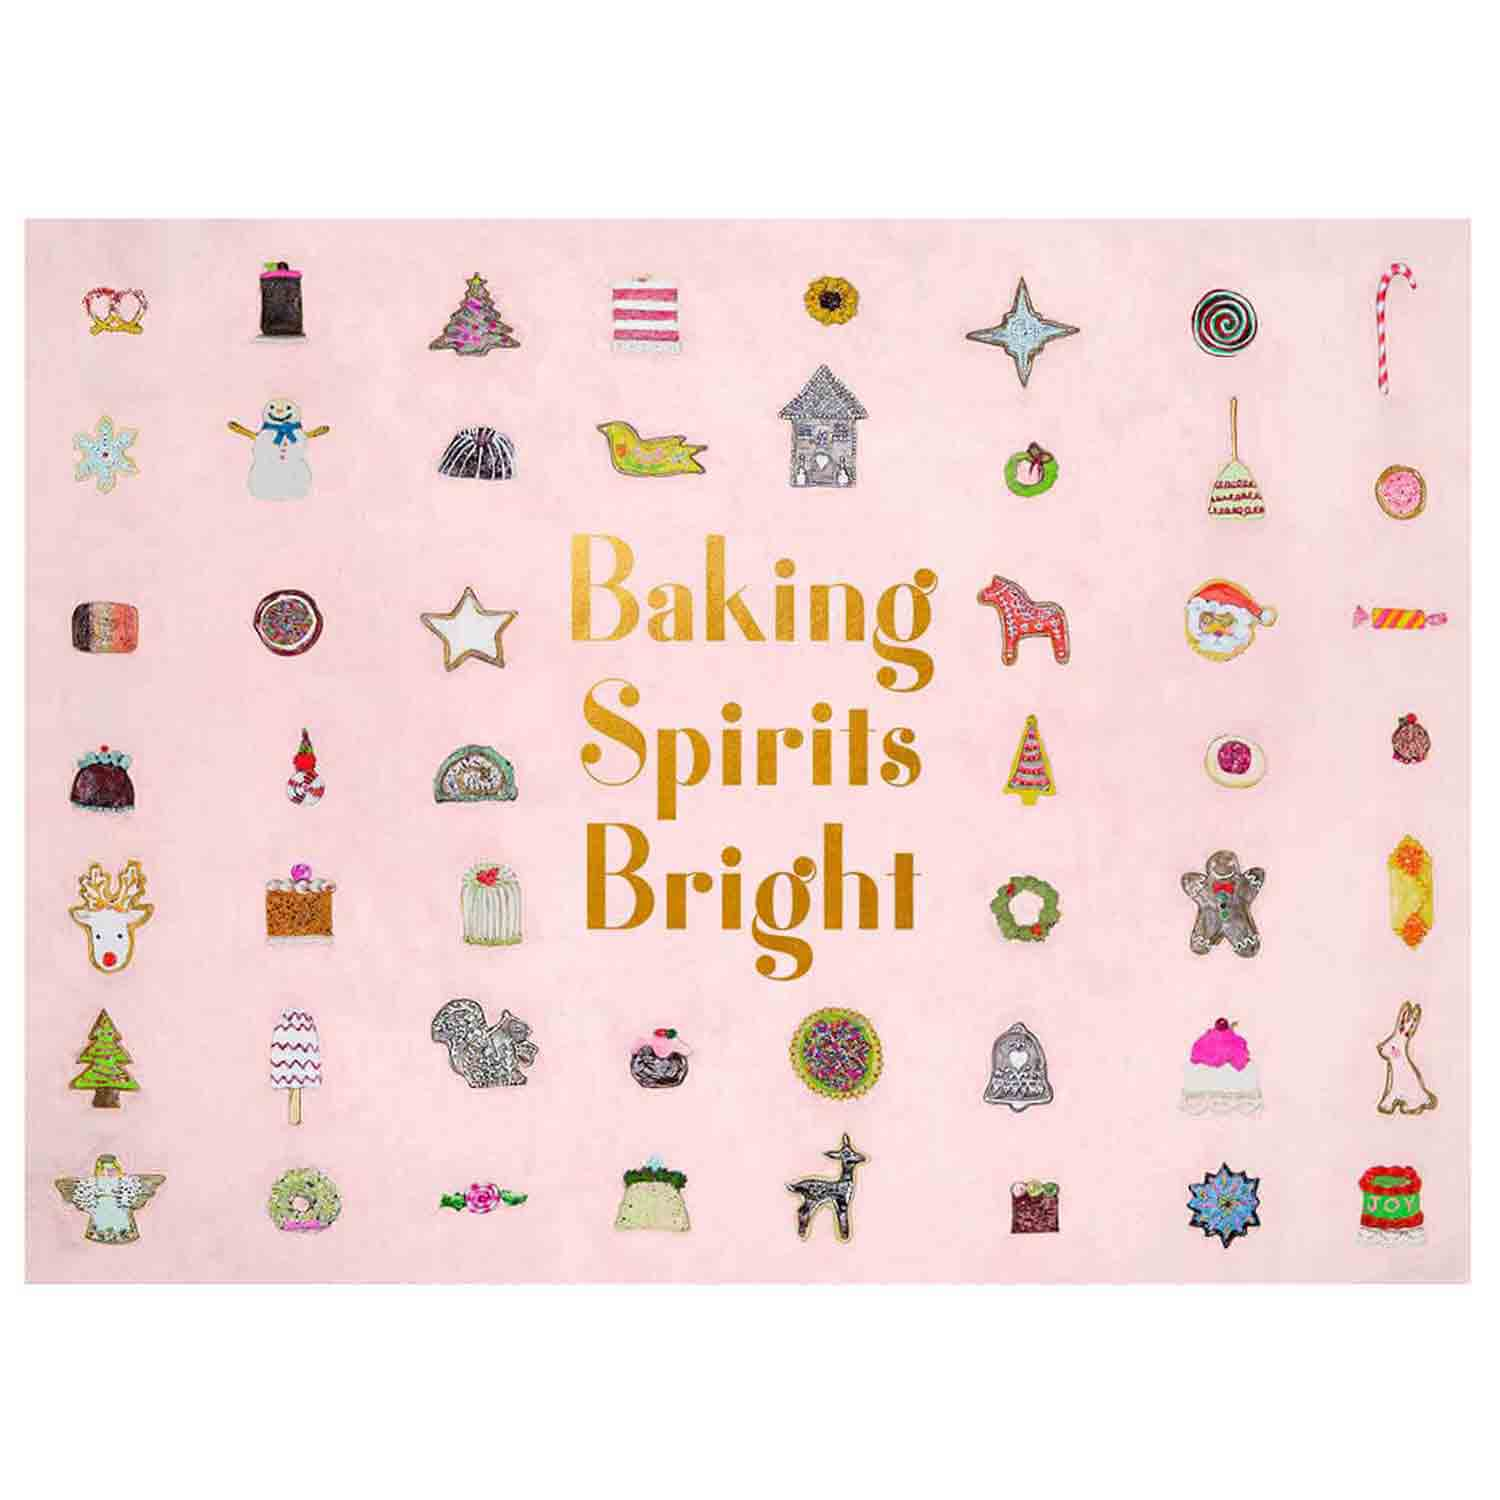 Baking Spirits Bright Placemat